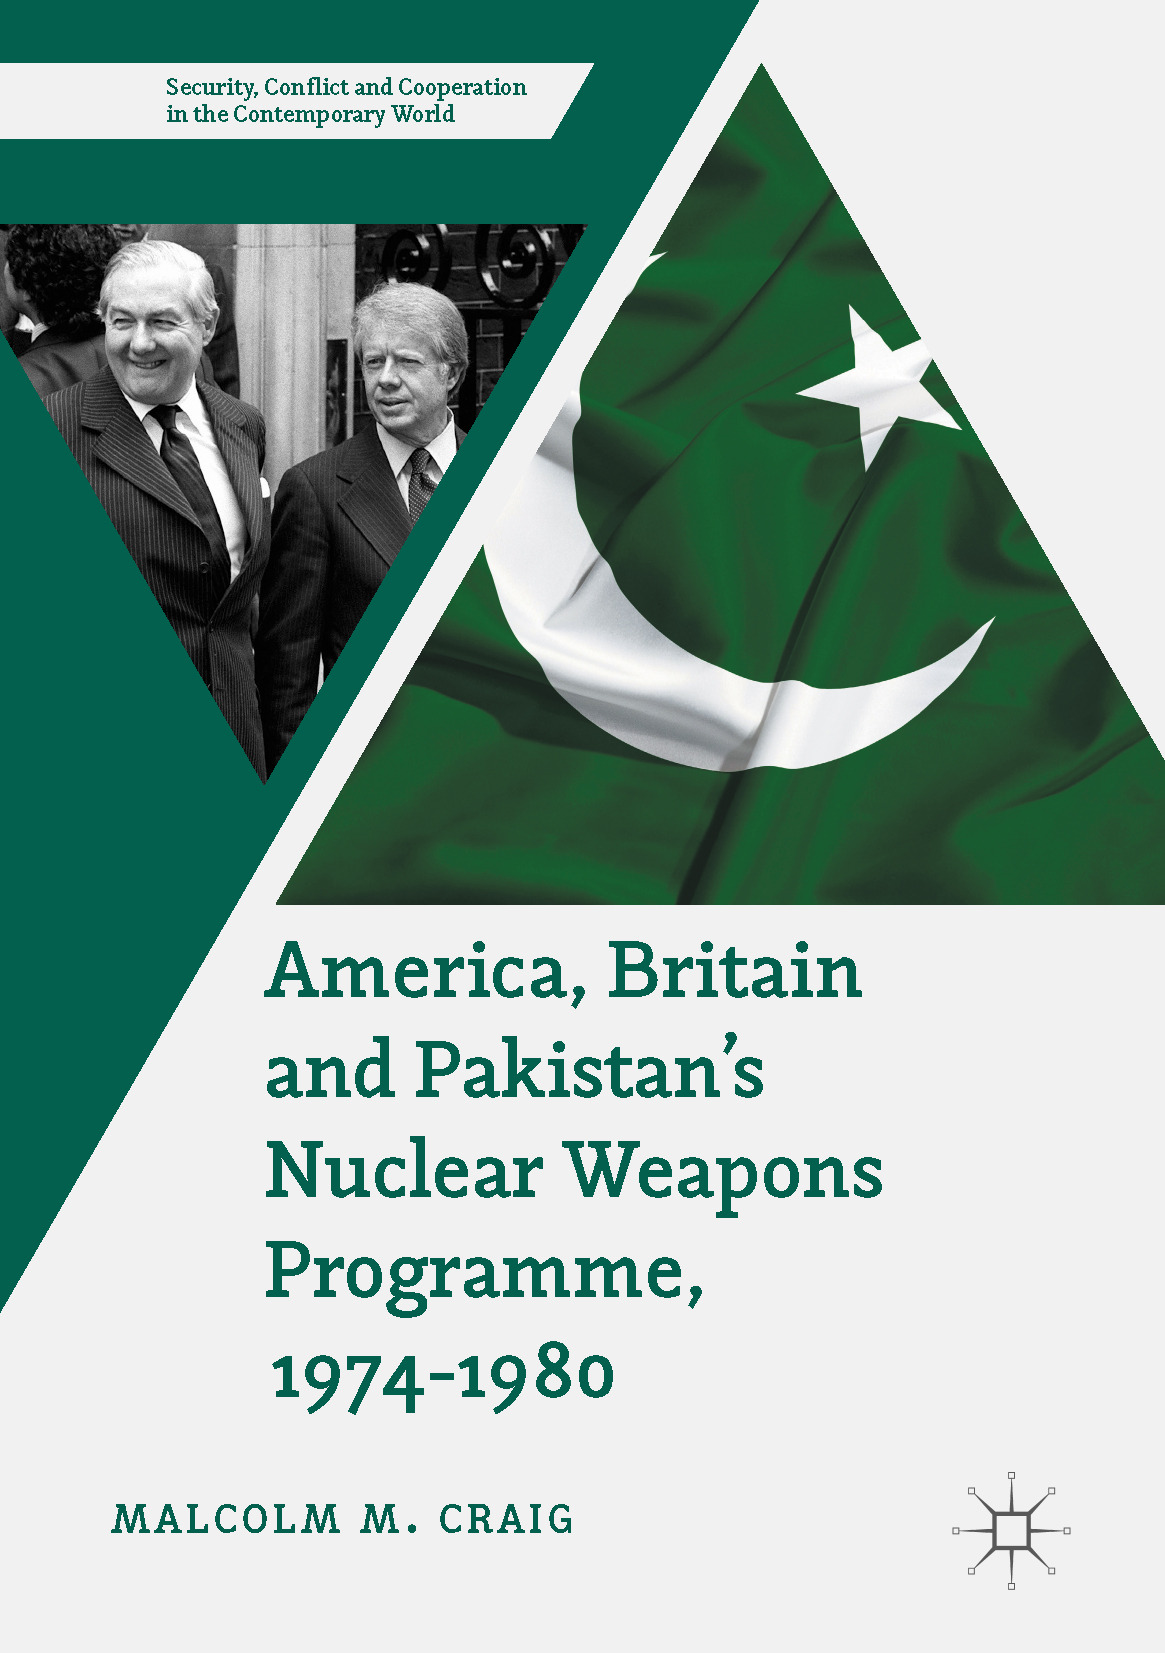 Craig, Malcolm M. - America, Britain and Pakistan's Nuclear Weapons Programme, 1974-1980, ebook